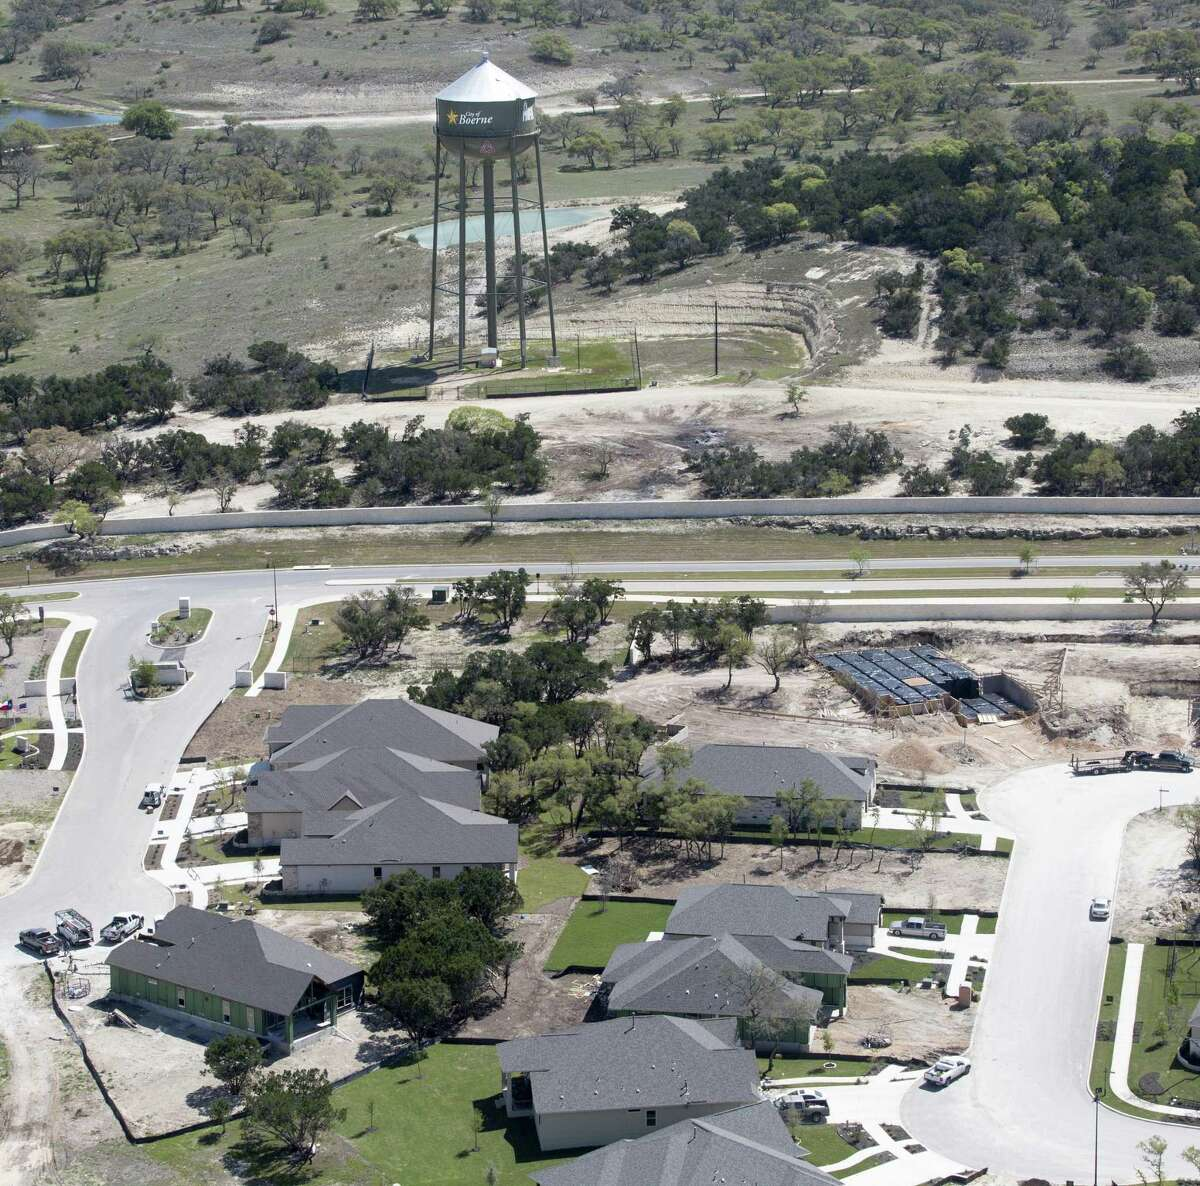 Boerne is the only incorporated city in Kendall County, which continues to show strong population growth, new census numbers show. Kendall County has drawn more than 12,000 new residents since 2010, with its population surging nearly 37 percent between 2010 and 2018.